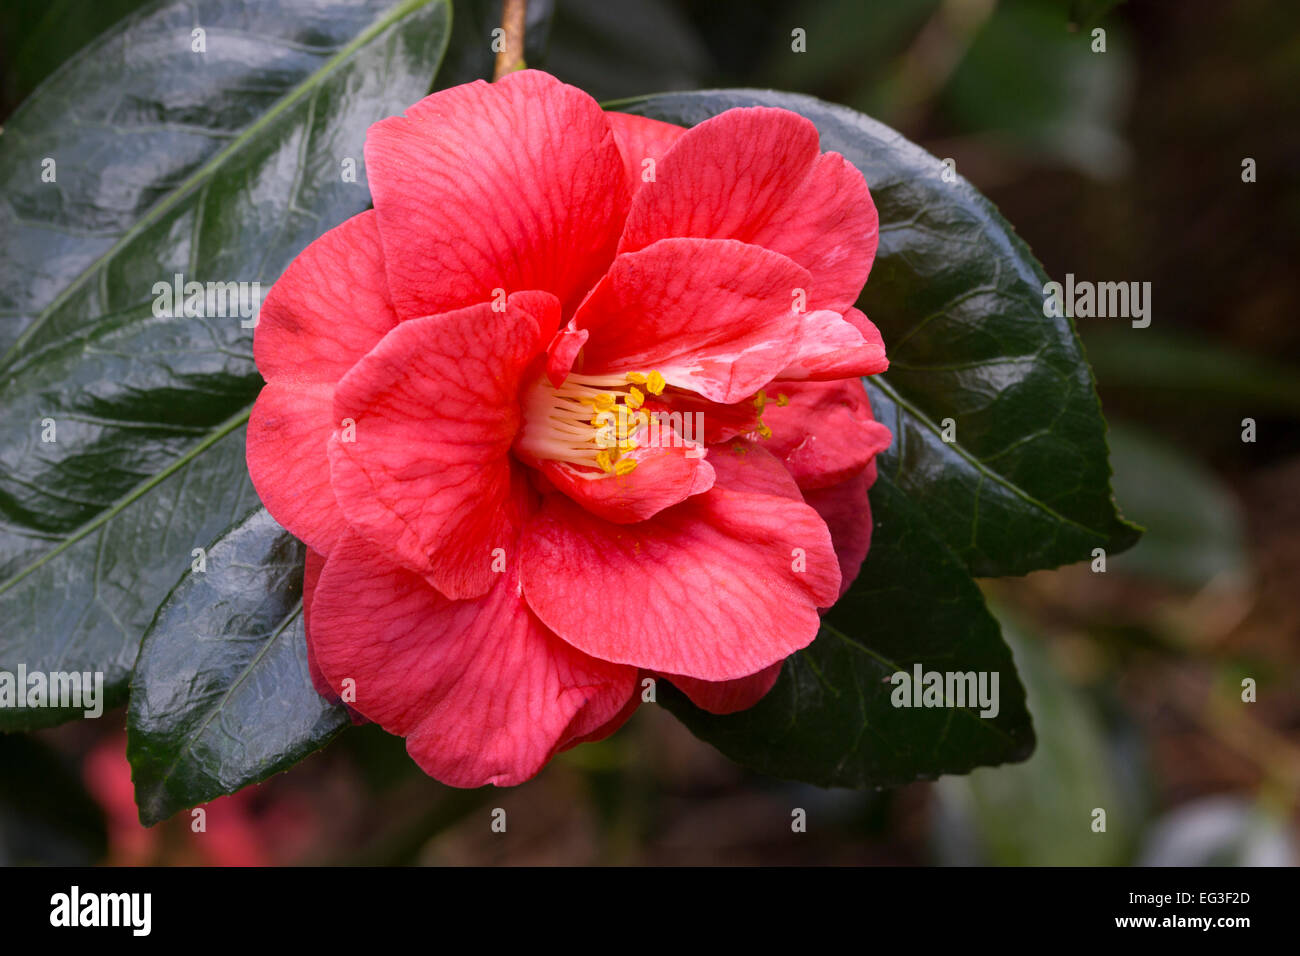 Single flower of the red, semi double Camellia japonica 'Ace of Hearts' - Stock Image